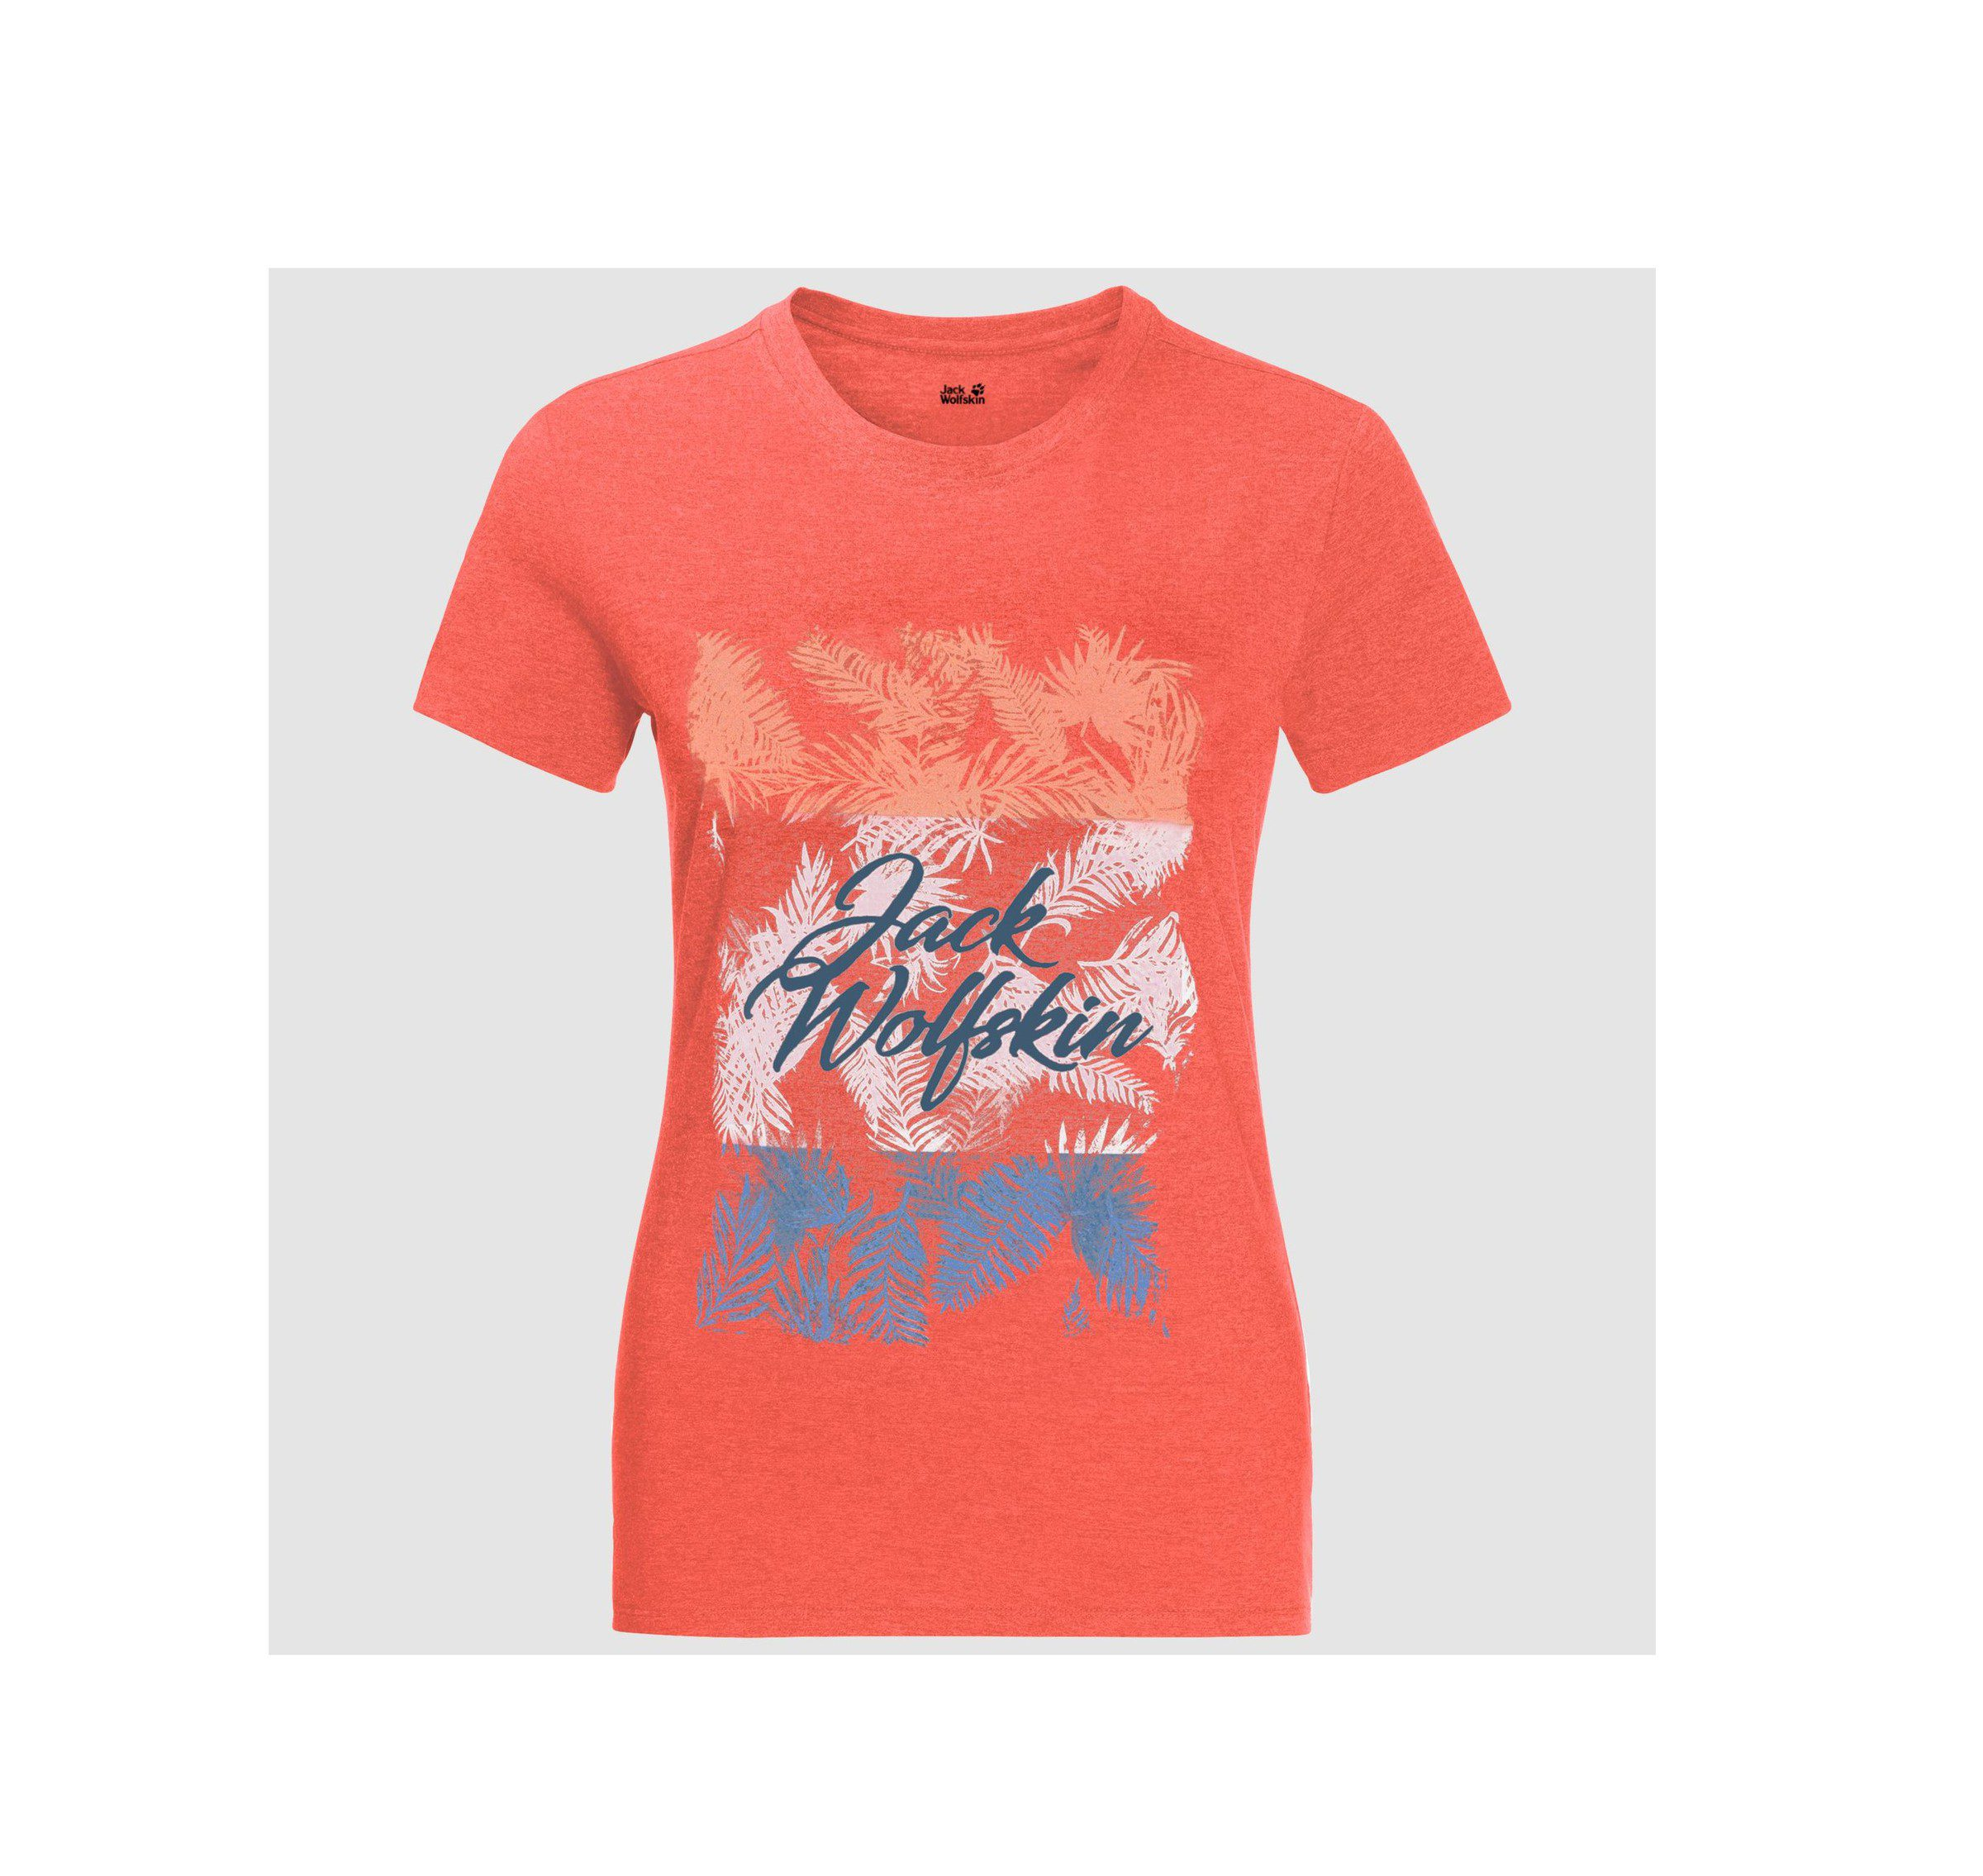 Jack Wolfskin Royal Palm Paw T-Shirt - hot coral